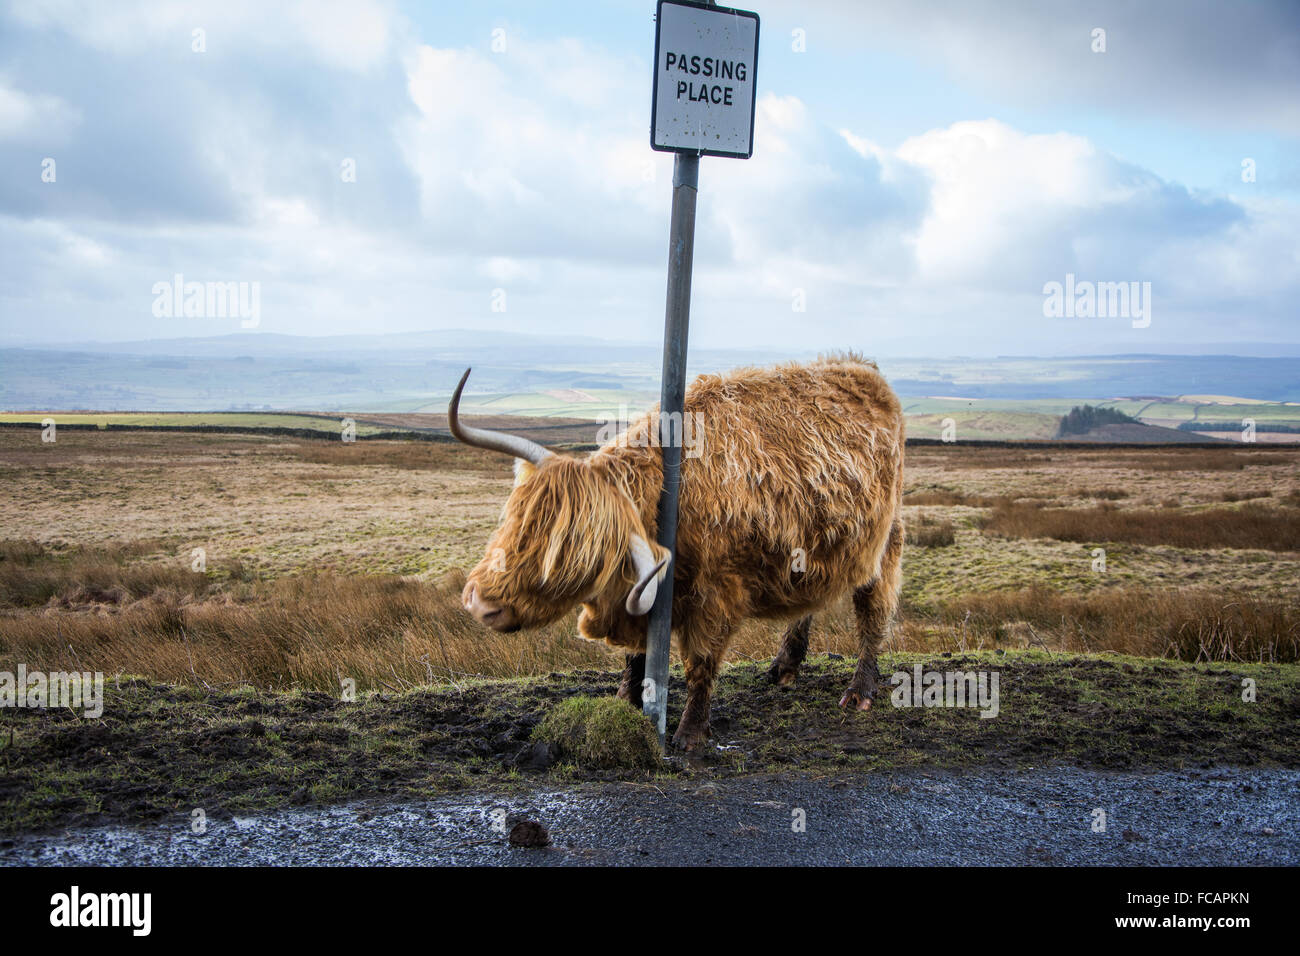 Vache Highland près de Malham dans le Yorkshire Dales Photo Stock